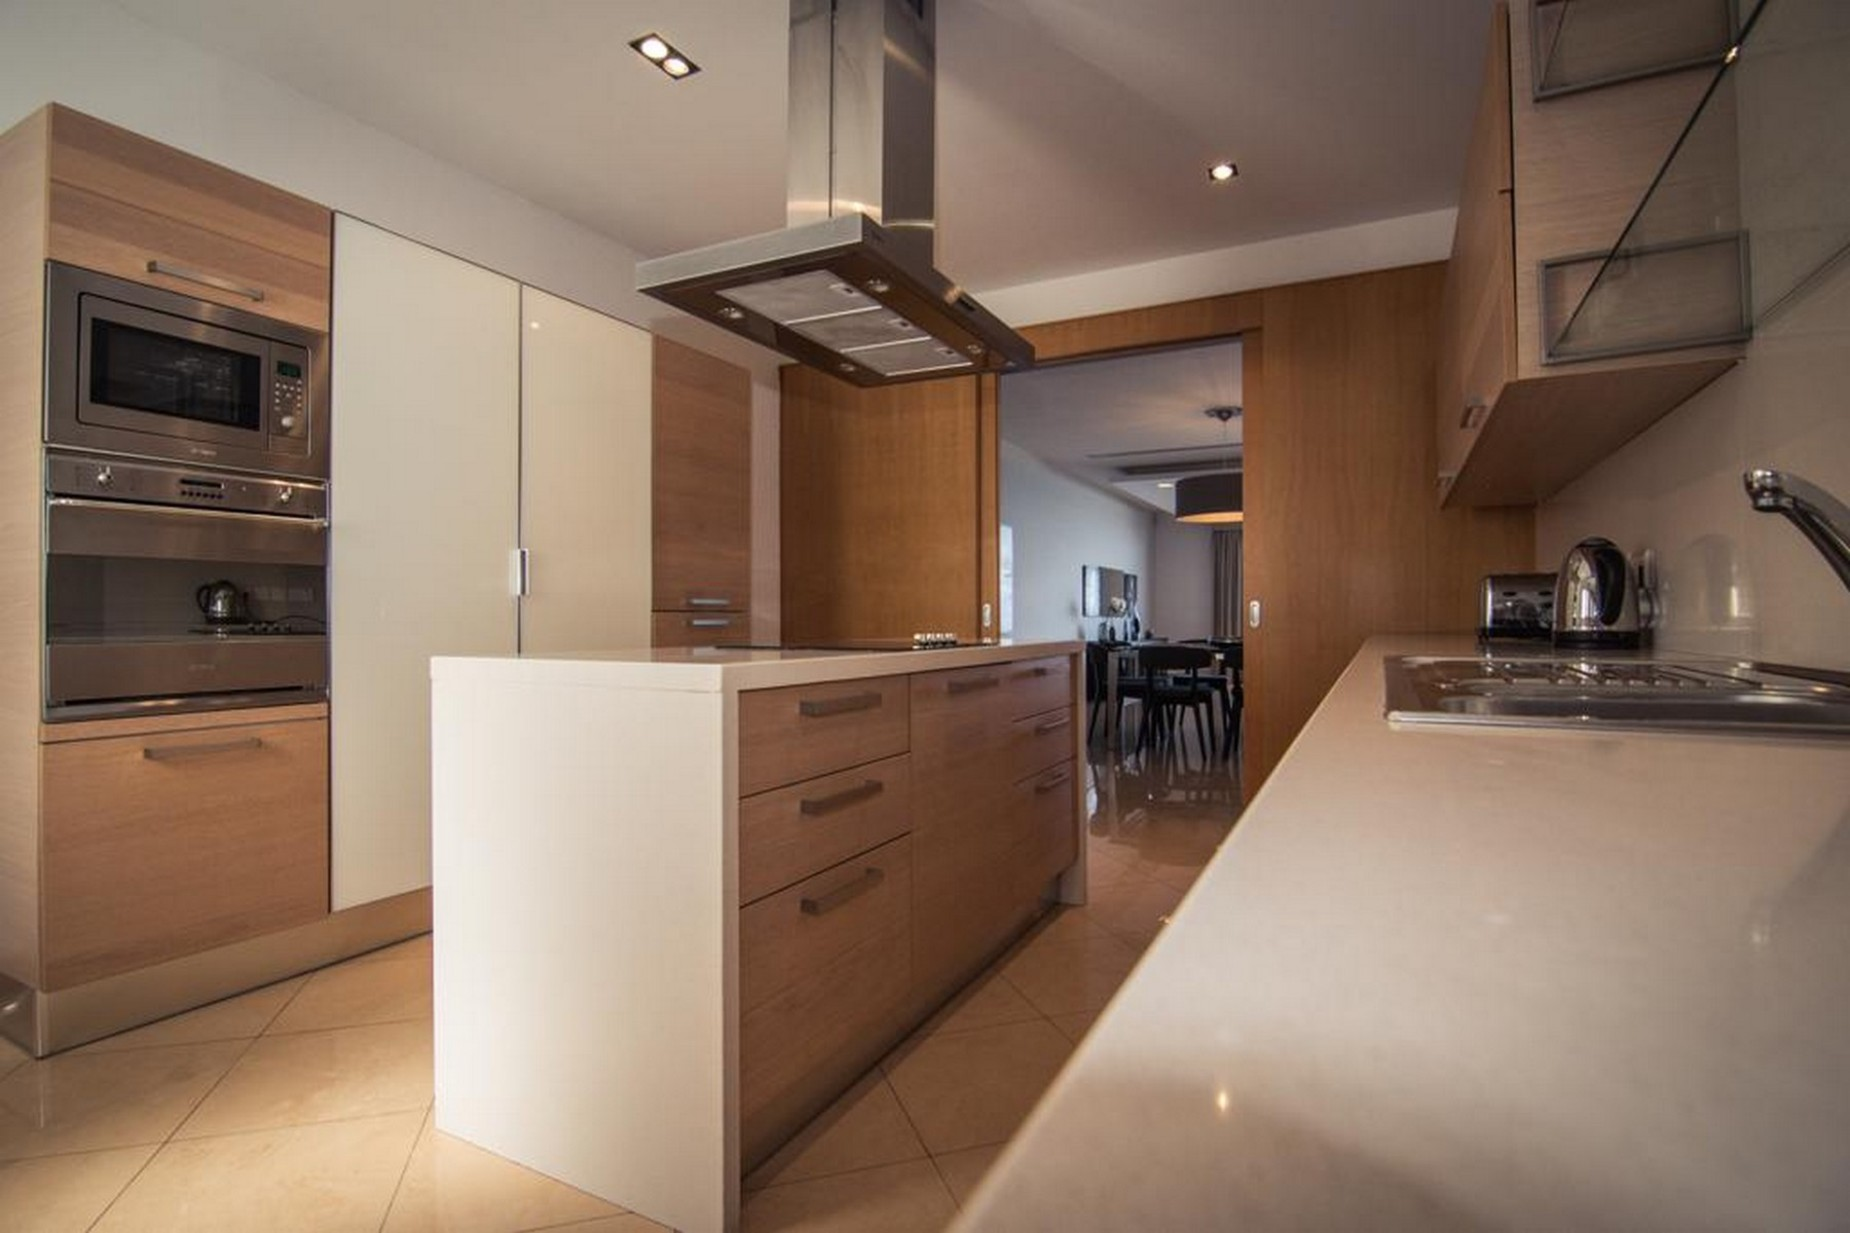 3 bed Penthouse For Rent in Sliema, Sliema - thumb 7